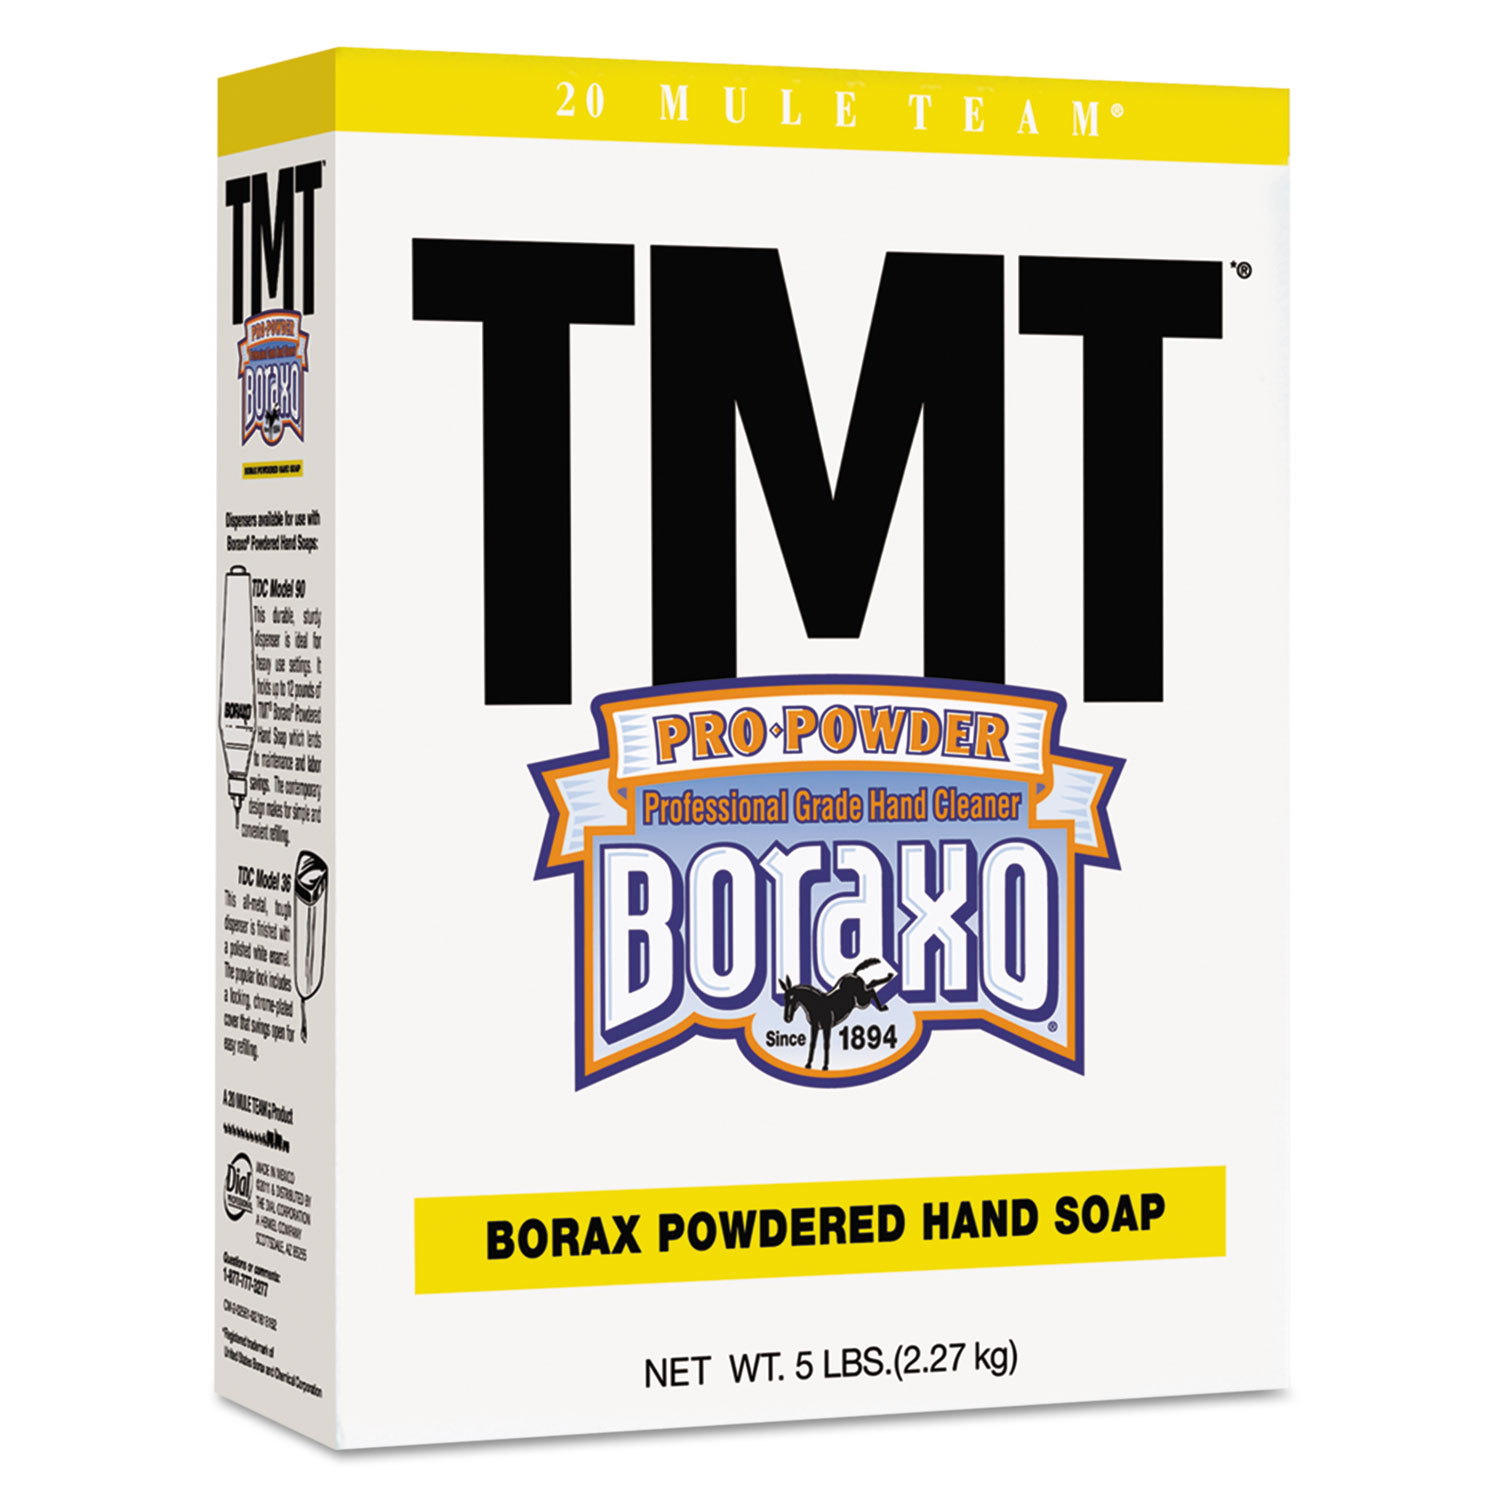 TMT Powdered Hand Soap, Unscented, 5 lb Box